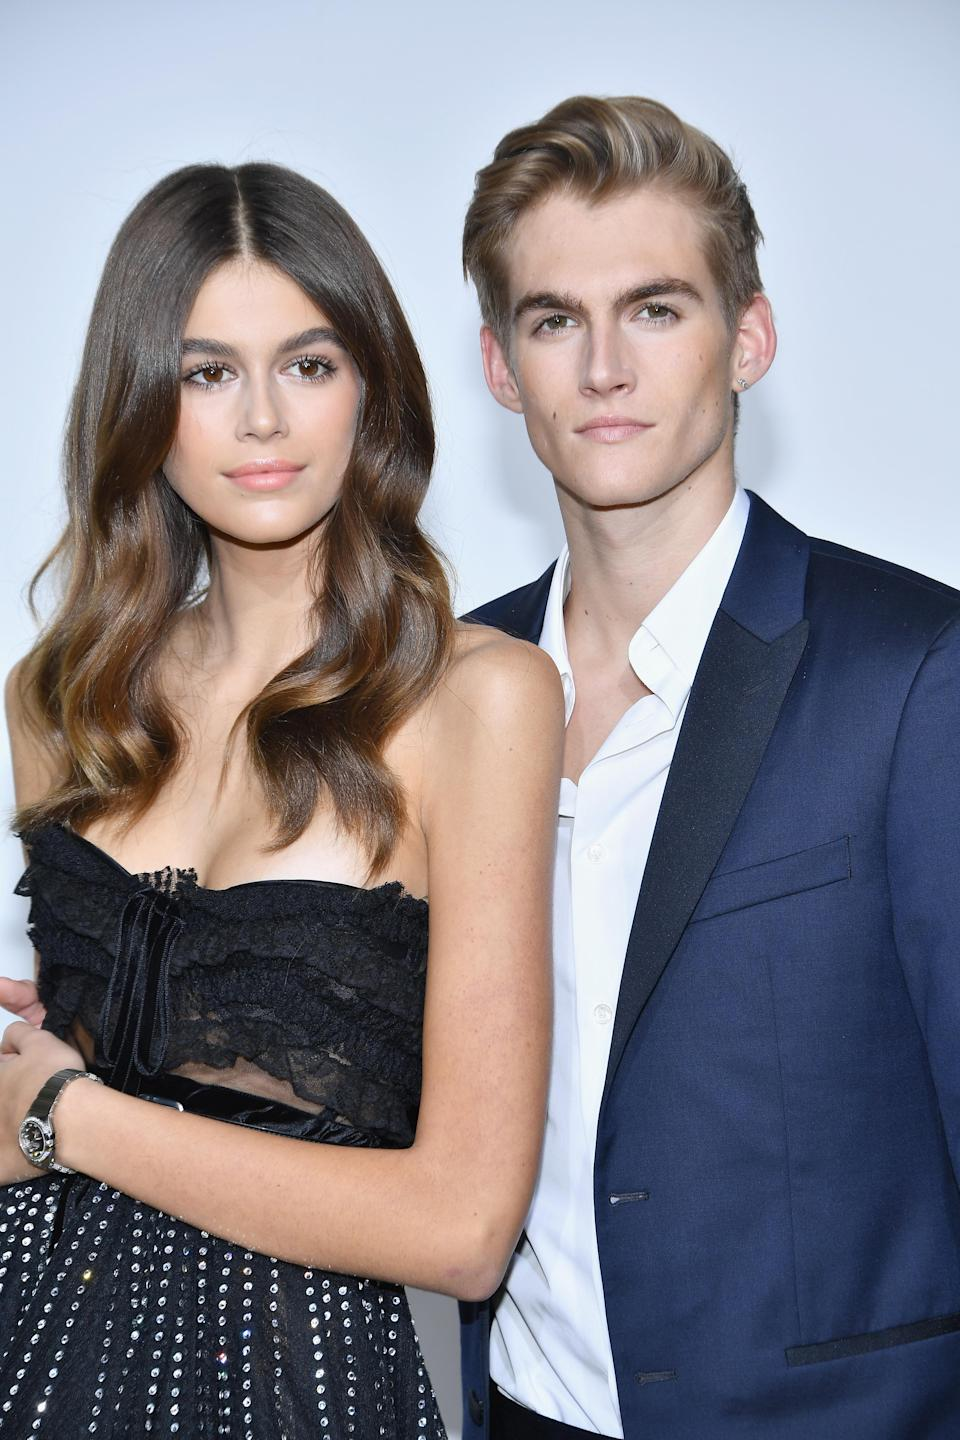 Presley Gerber tattooed sister Kaia's name on his body — is that weird? (Photo: Getty Images)